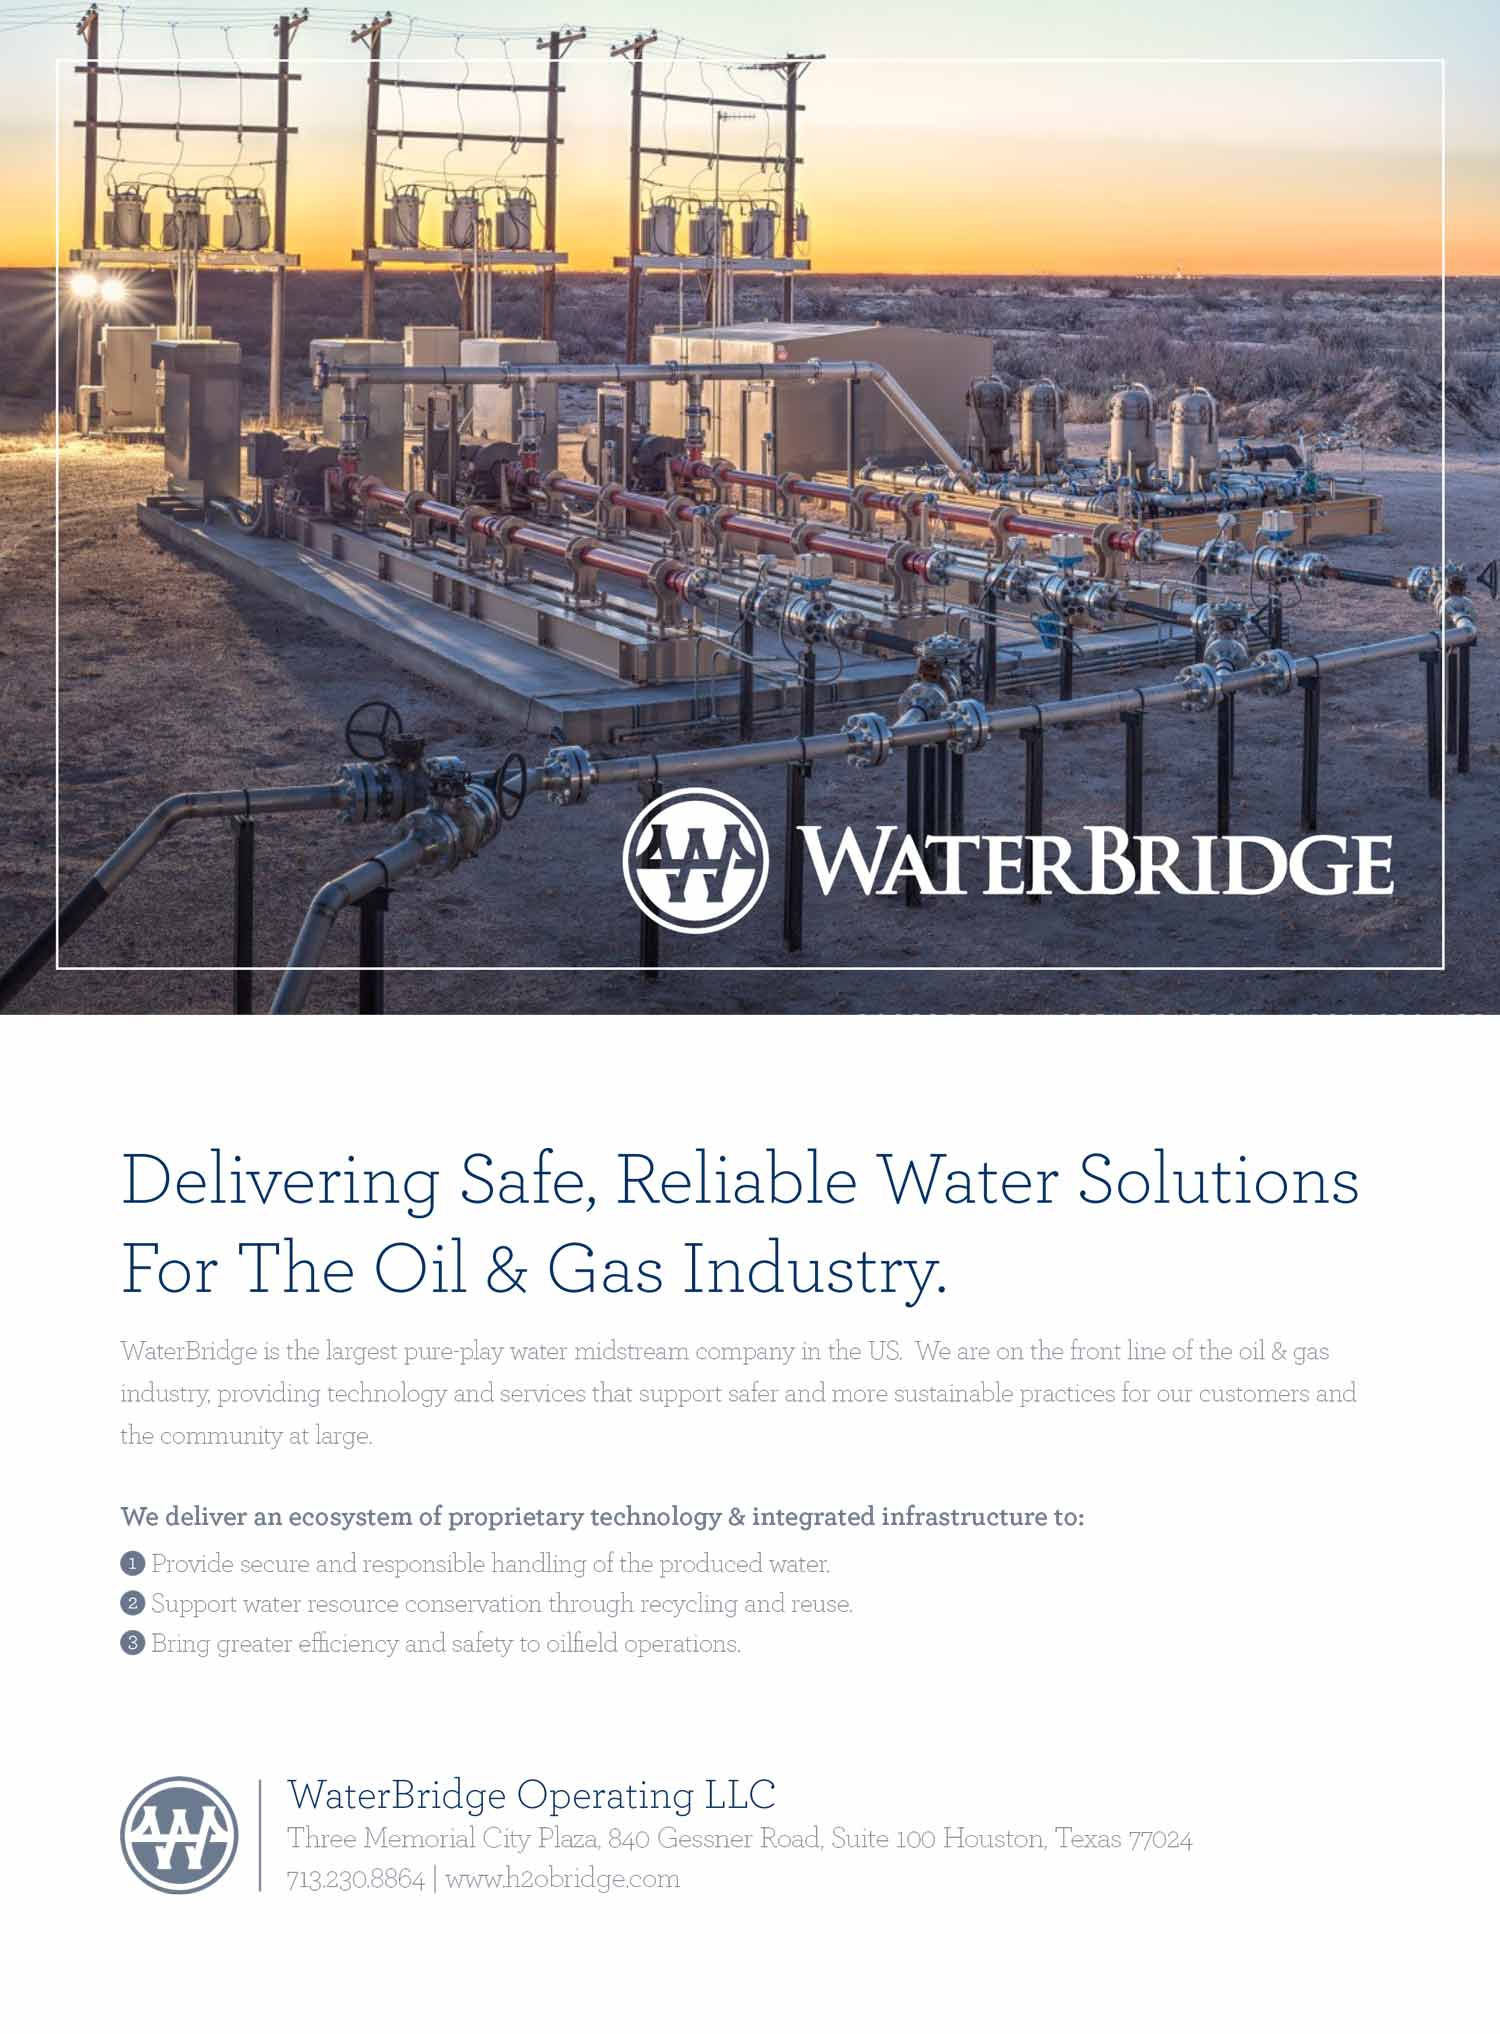 WaterBridge Operating LLC Advertisement